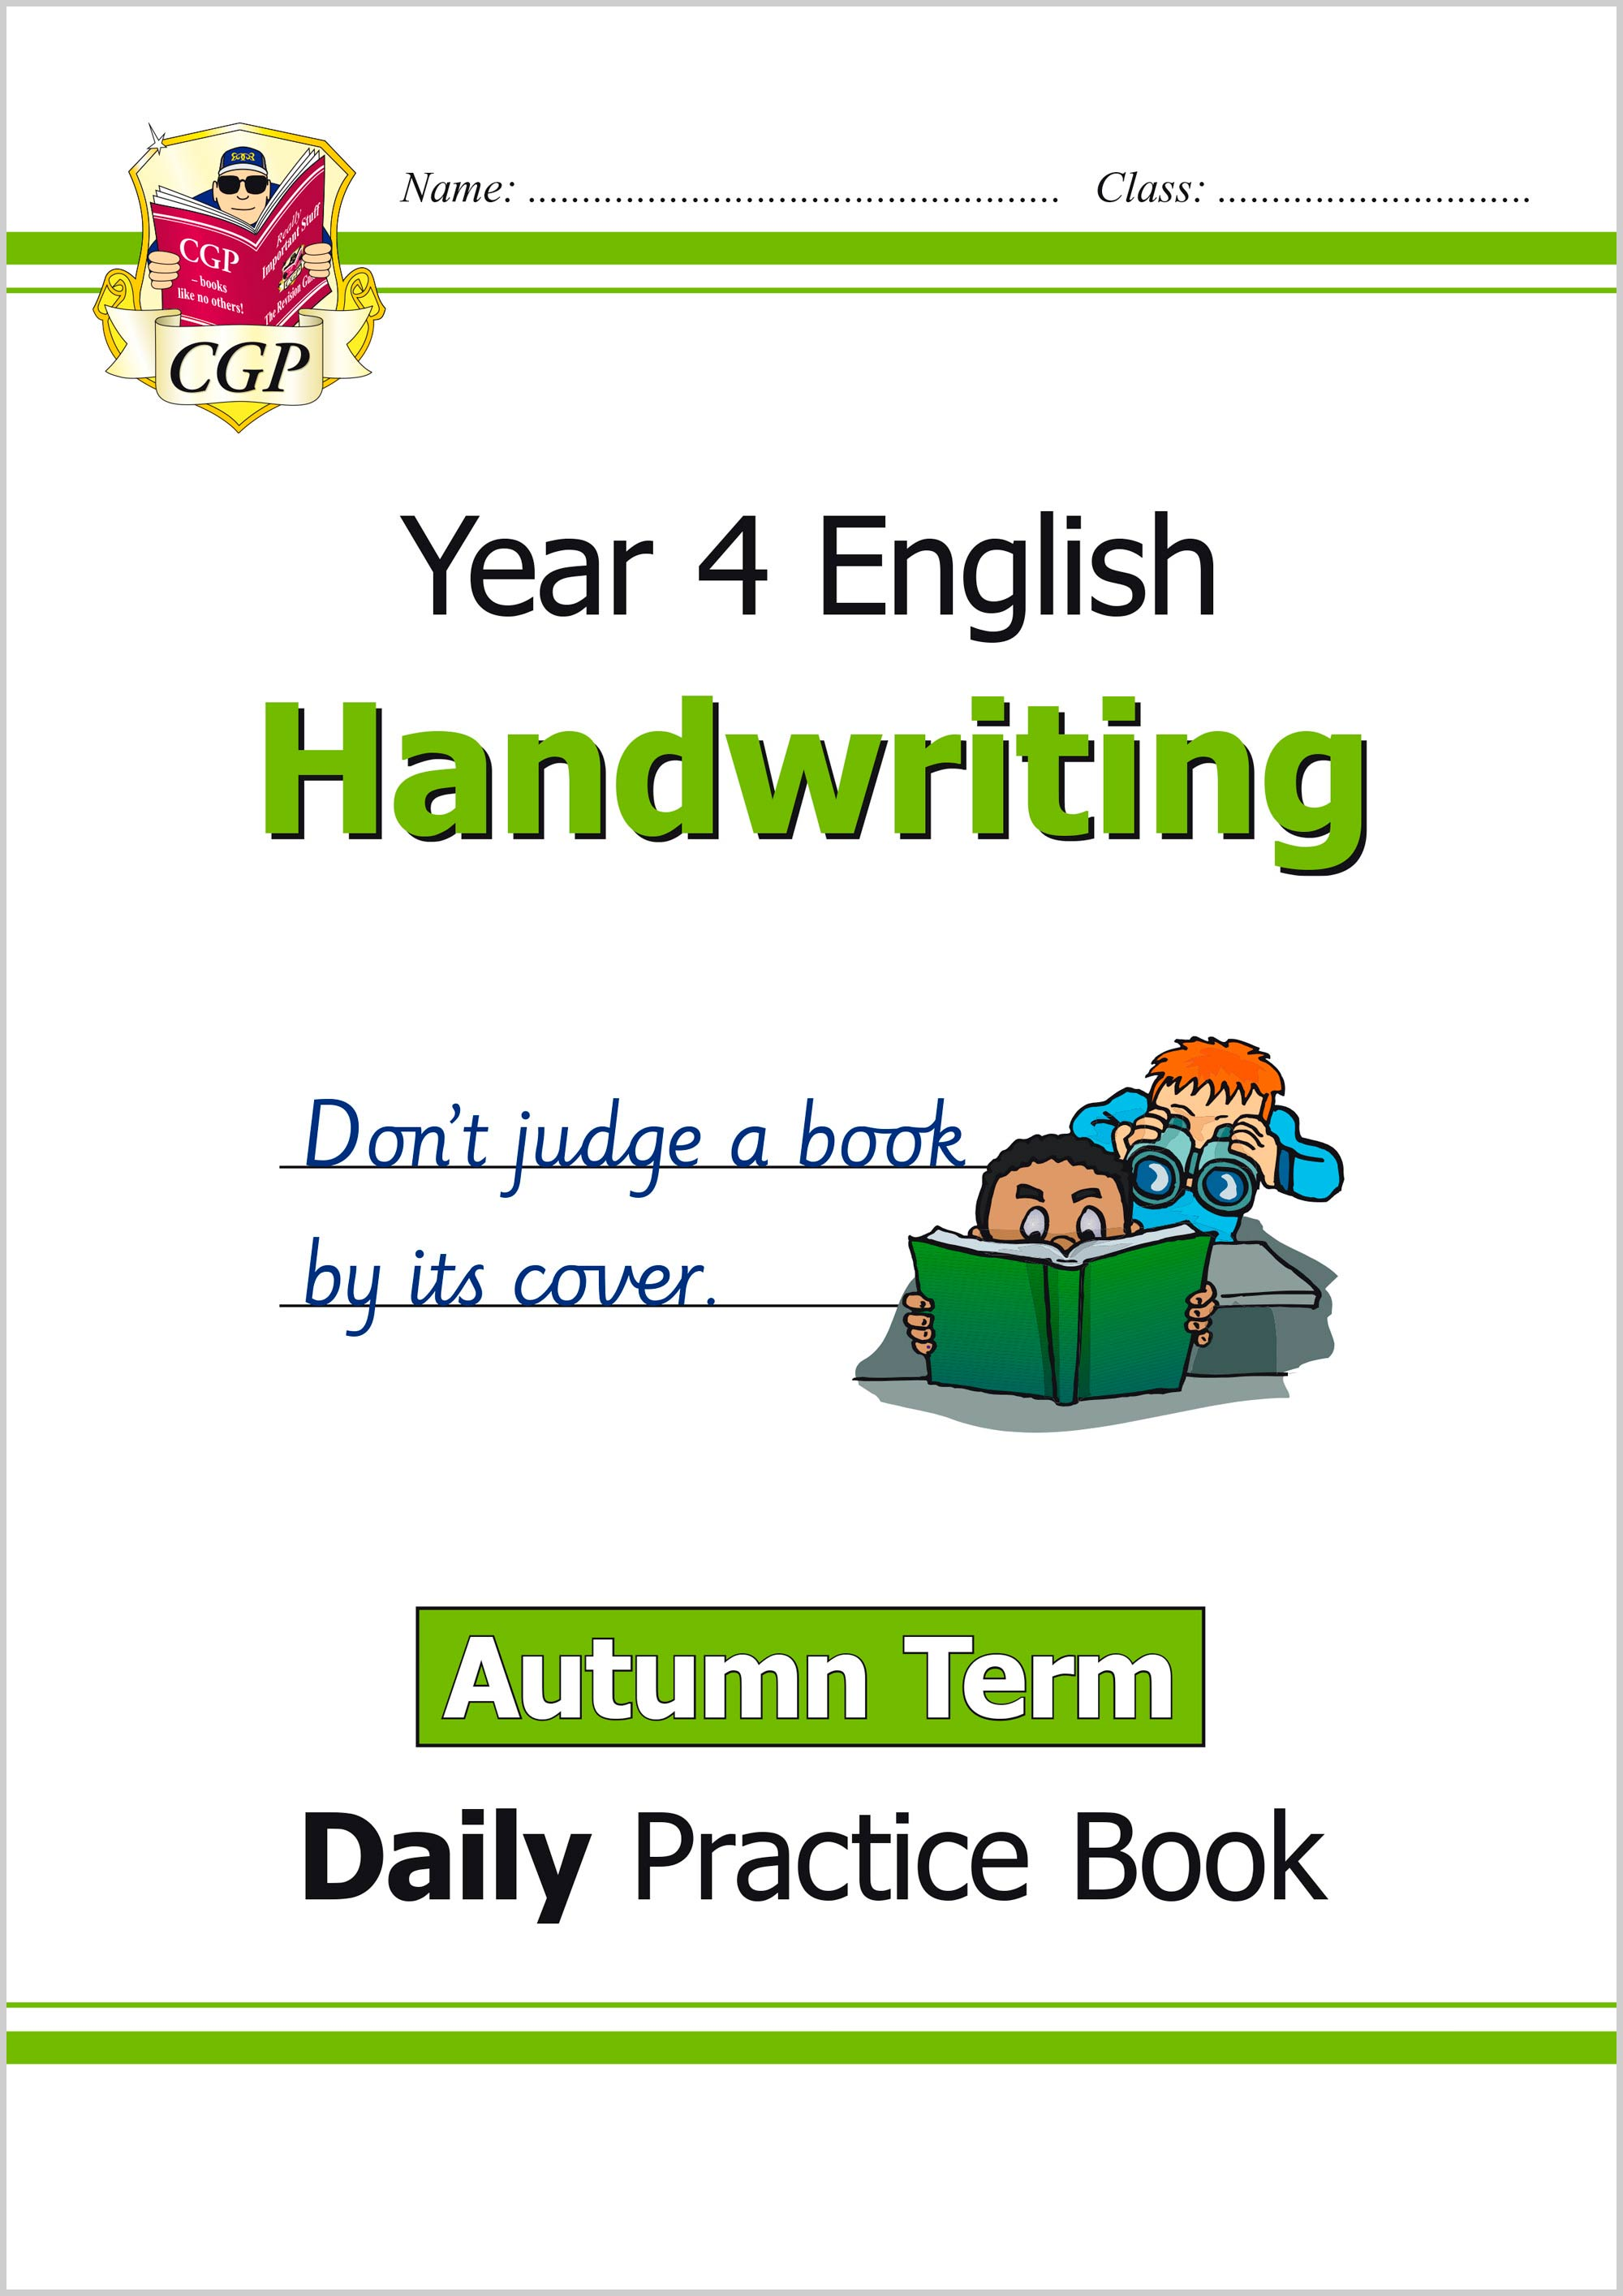 E4HWAU21 - New KS2 Handwriting Daily Practice Book: Year 4 - Autumn Term